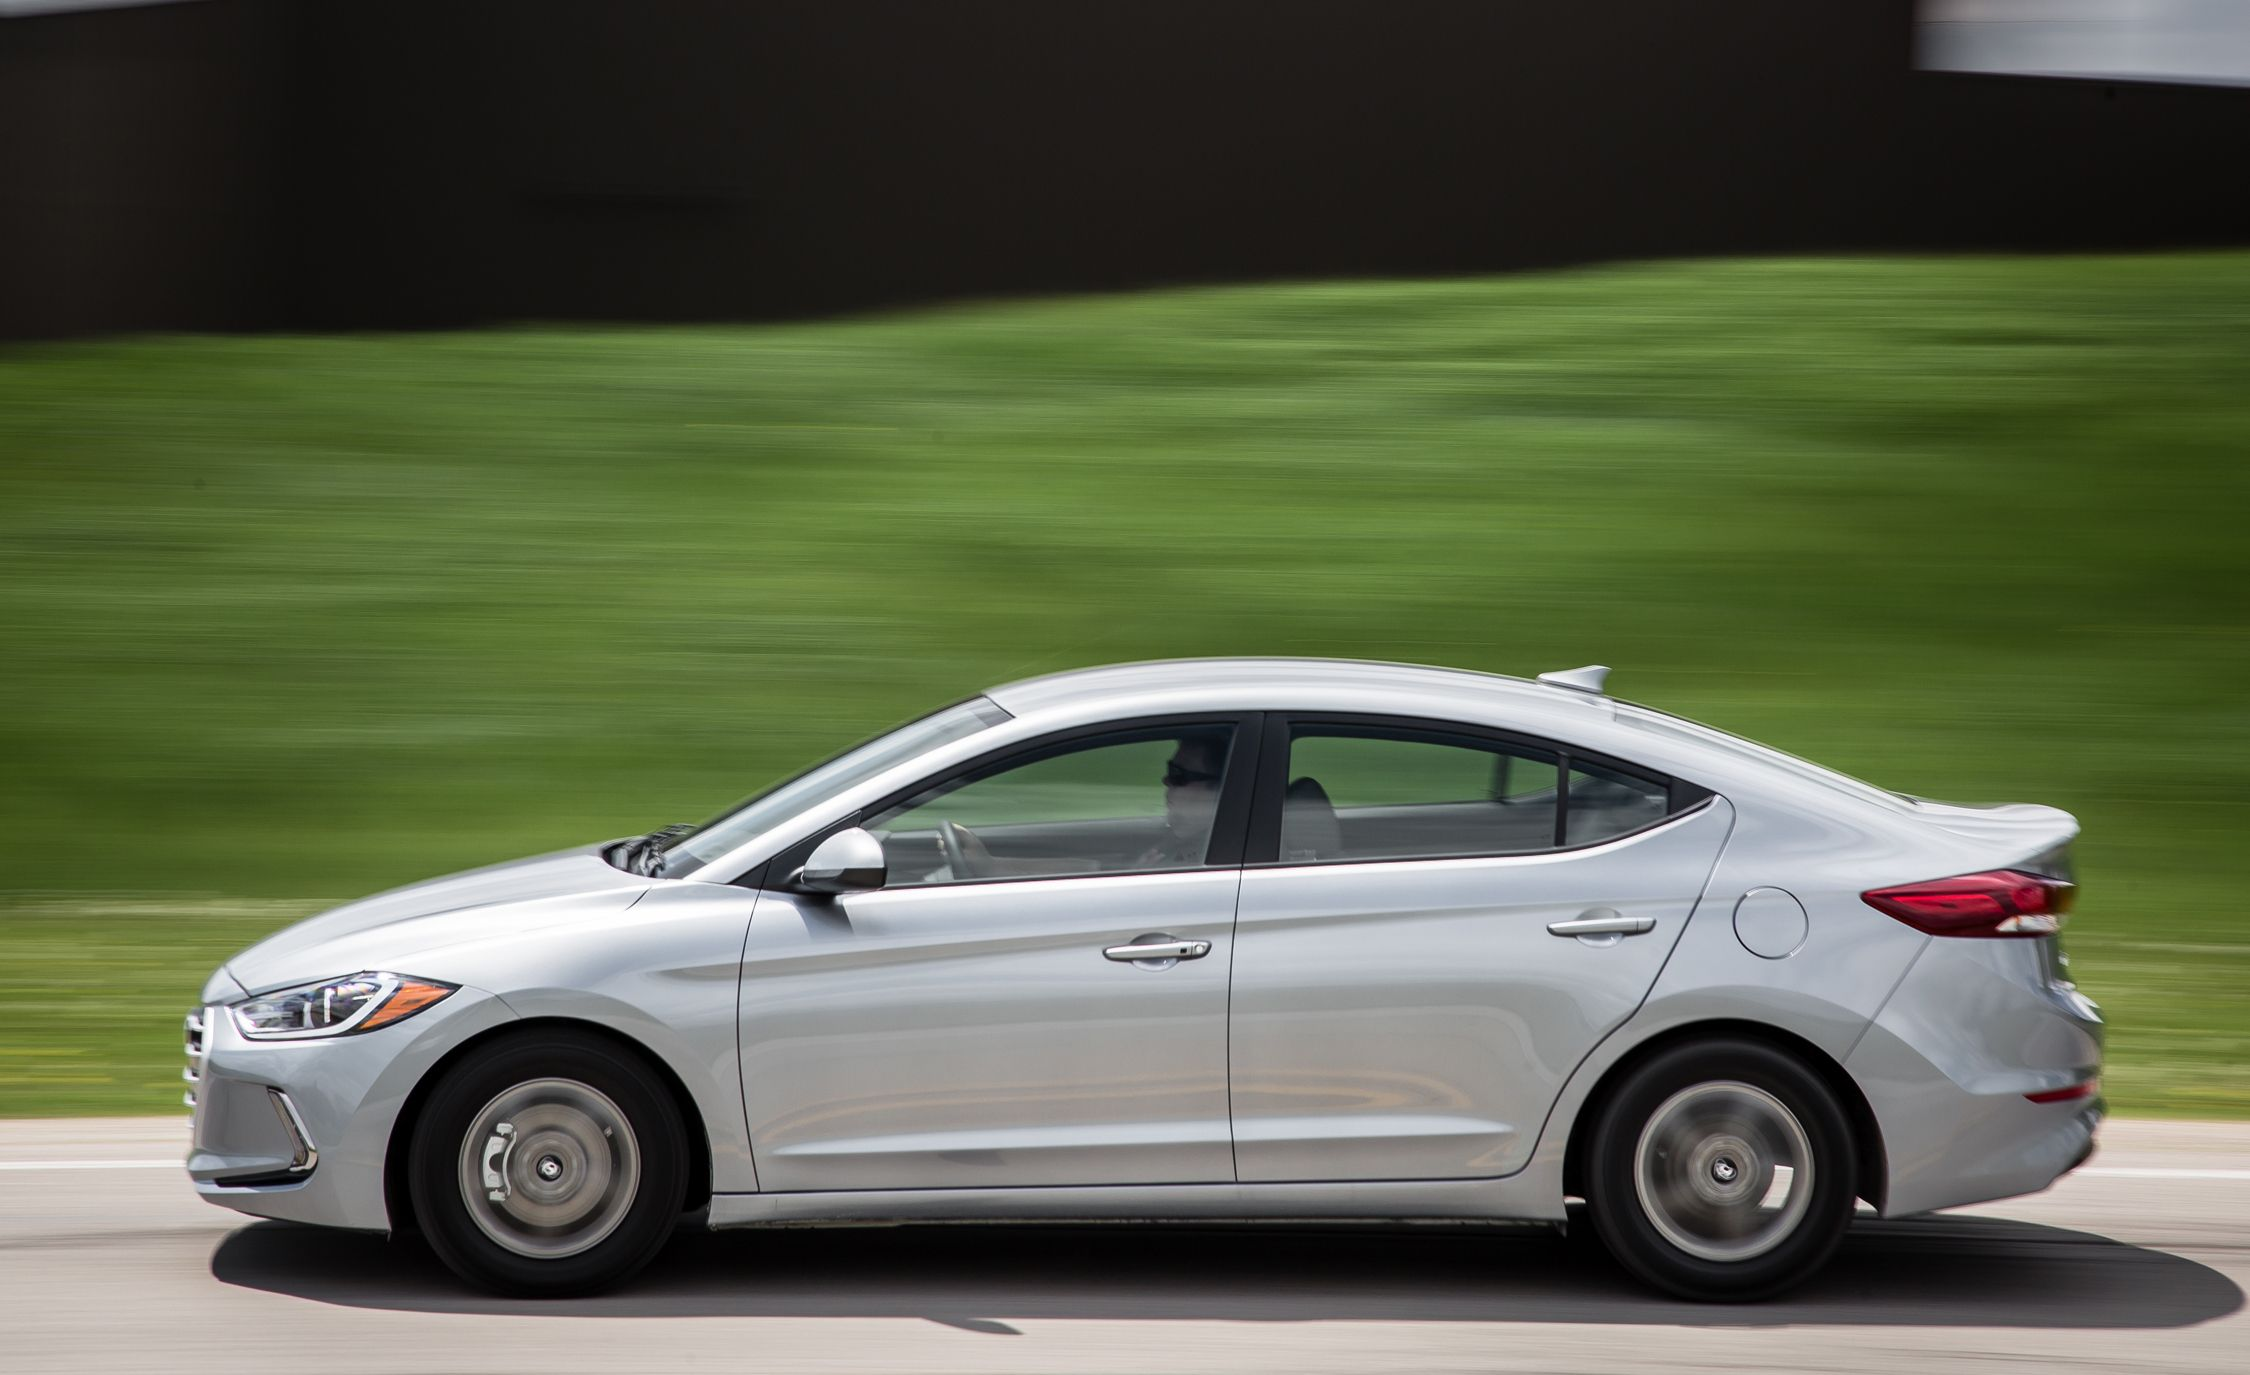 Hyundai Elantra 2012 Model >> 2018 Hyundai Elantra | Interior Review | Car and Driver